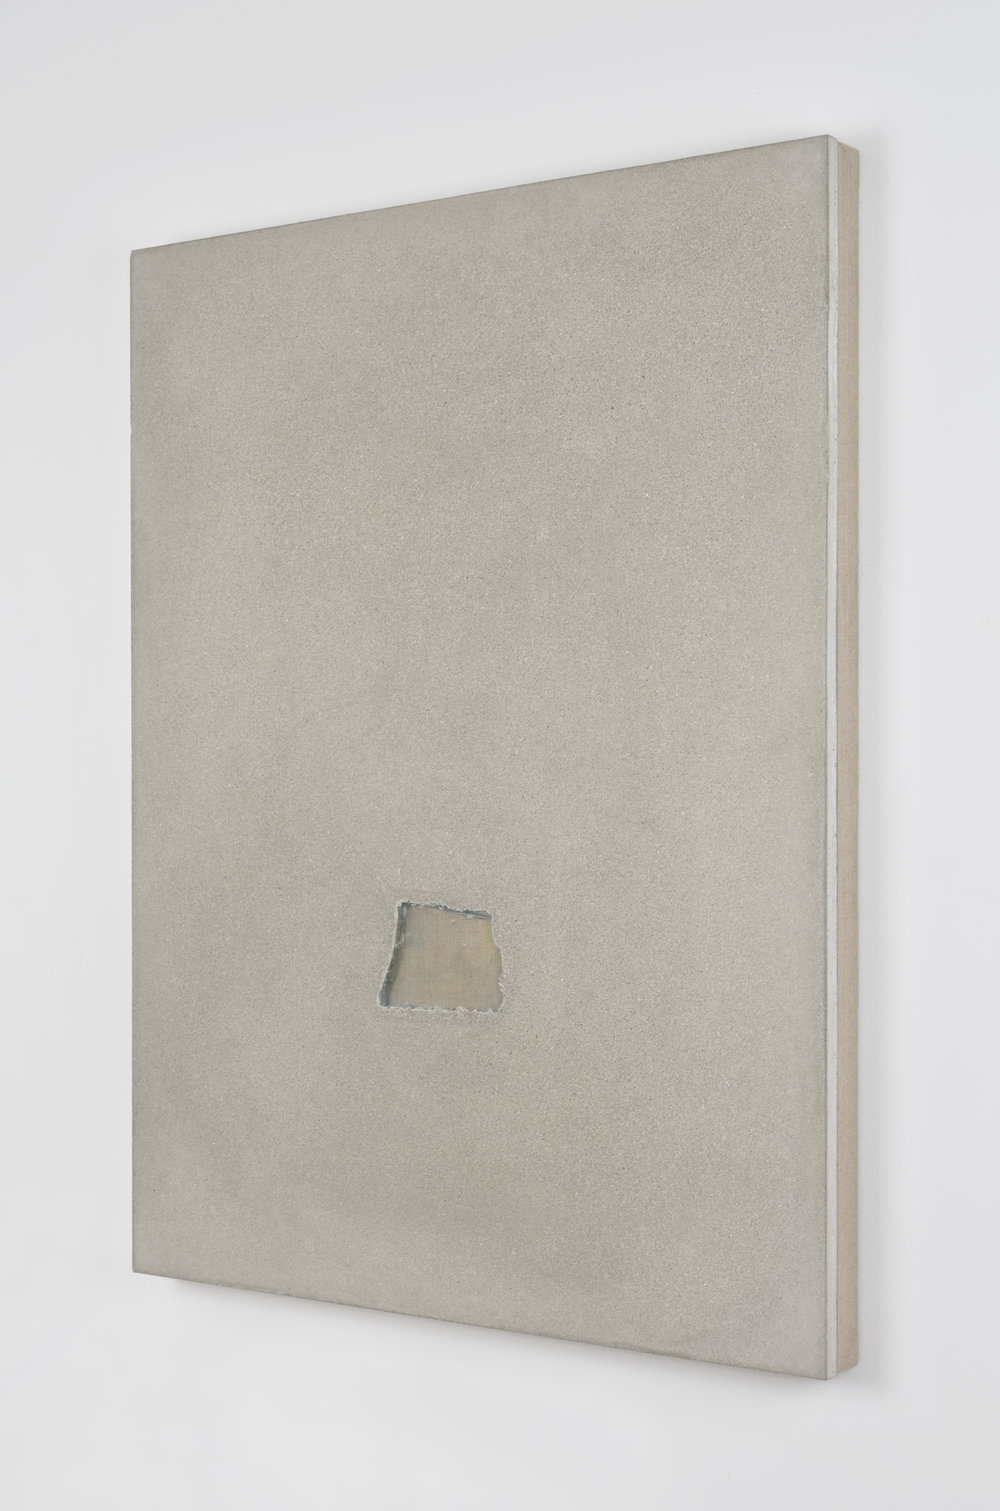 Analia Saban, Slab Foundation with Glass Opening #2, 2015 glass and concrete on canvas 101,5 x 76 x 6 cm - 40 x 30 x 2 1/4 inches